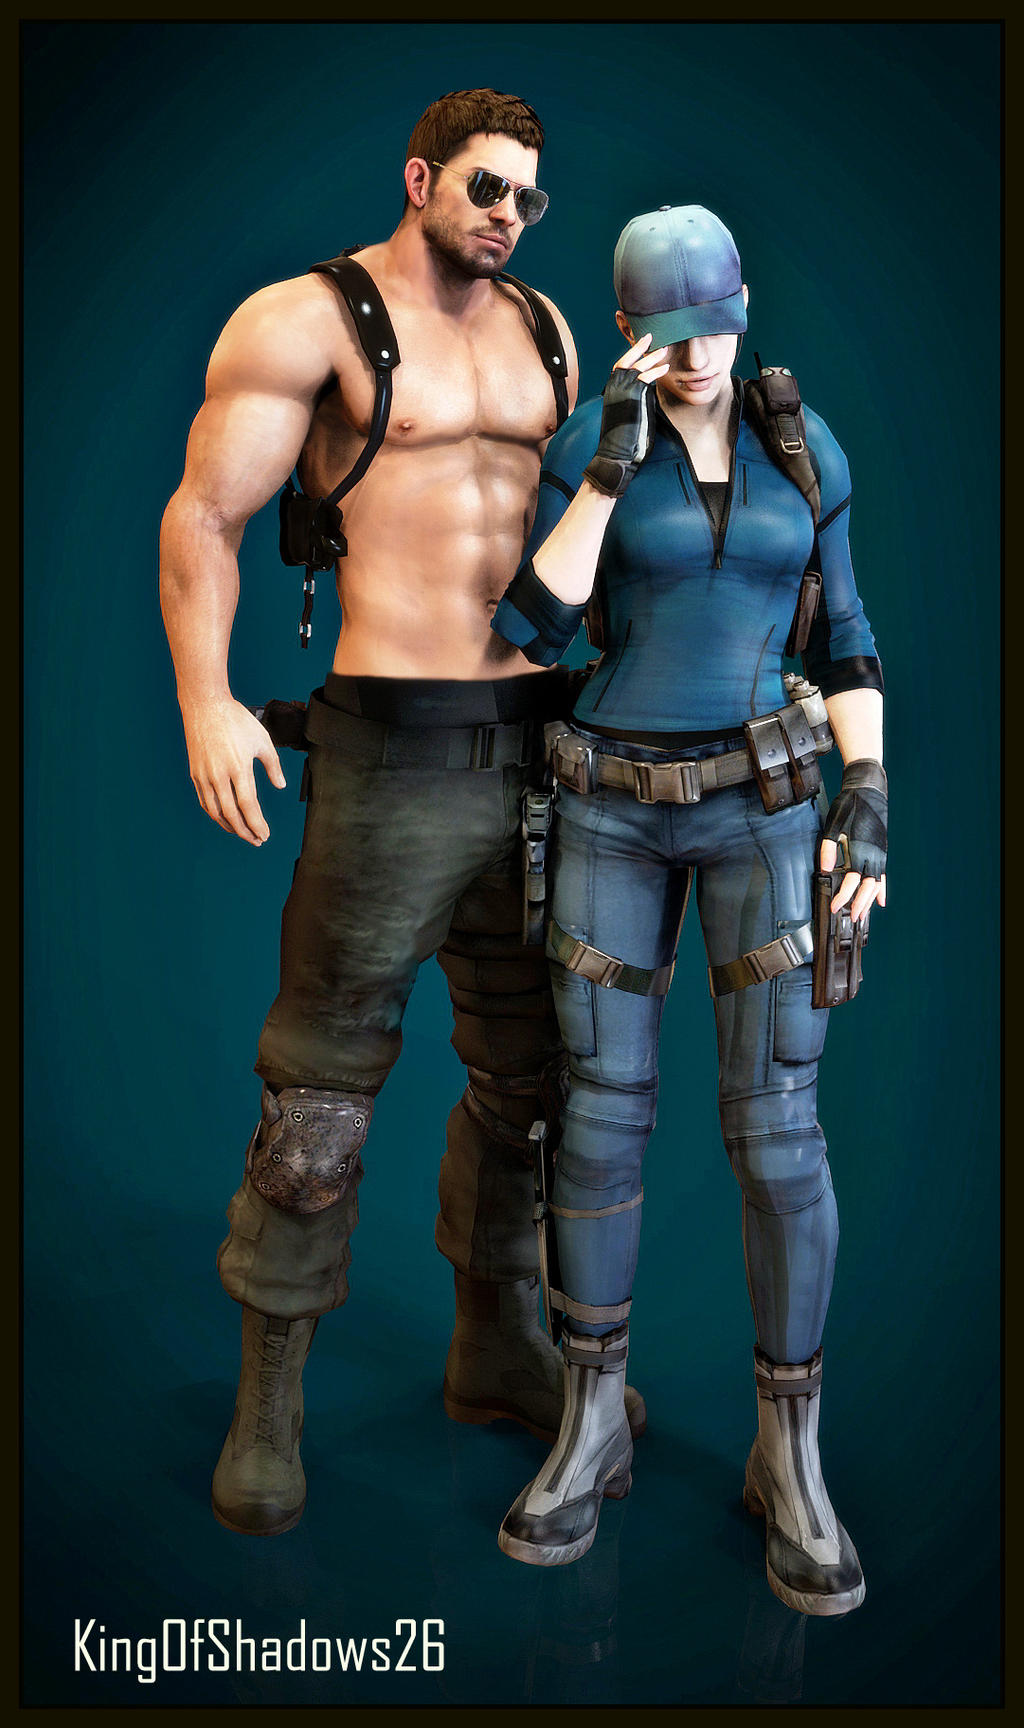 jill valentine and chris redfield relationship trust